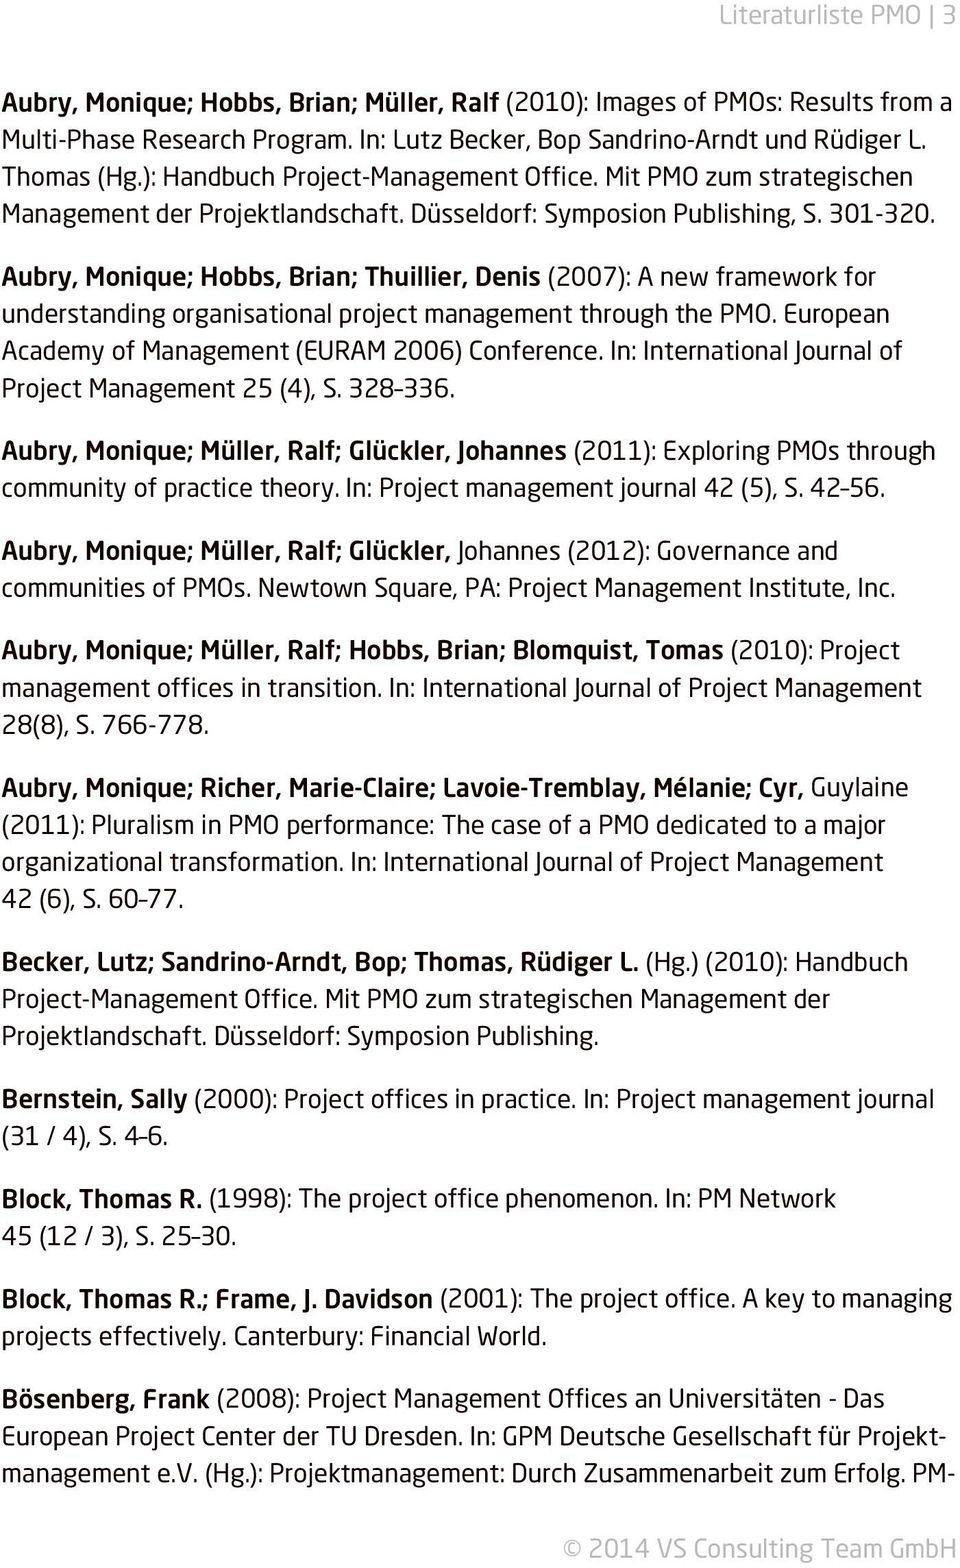 Aubry, Monique; Hobbs, Brian; Thuillier, Denis (2007): A new framework for understanding organisational project management through the PMO. European Academy of Management (EURAM 2006) Conference.